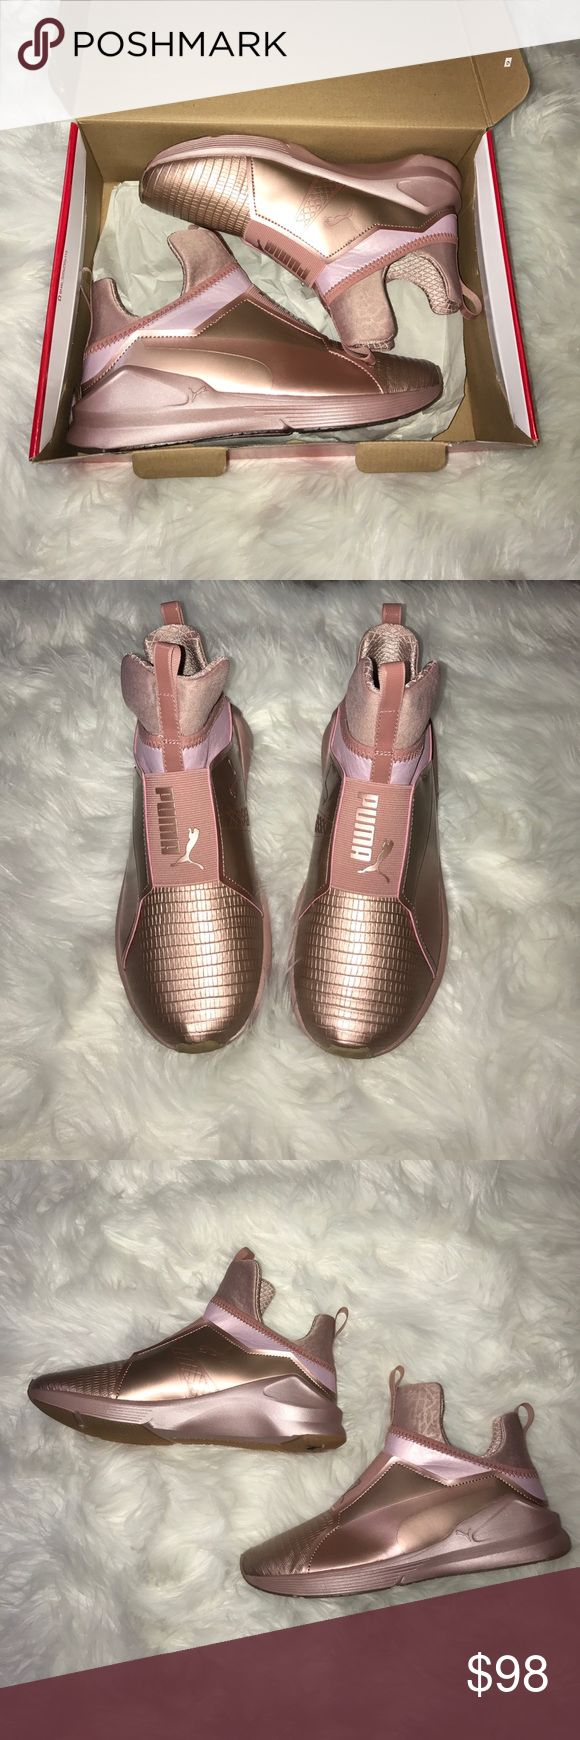 Puma Fierce (rare rose gold) PUMA, Fierce metallic rose gold sneaker, slide on, US WOMENS 8, Brand new with box (too small for me) I purchased the same pair in a bigger size... Definitely a statement sneaker! Puma Shoes Athletic Shoes